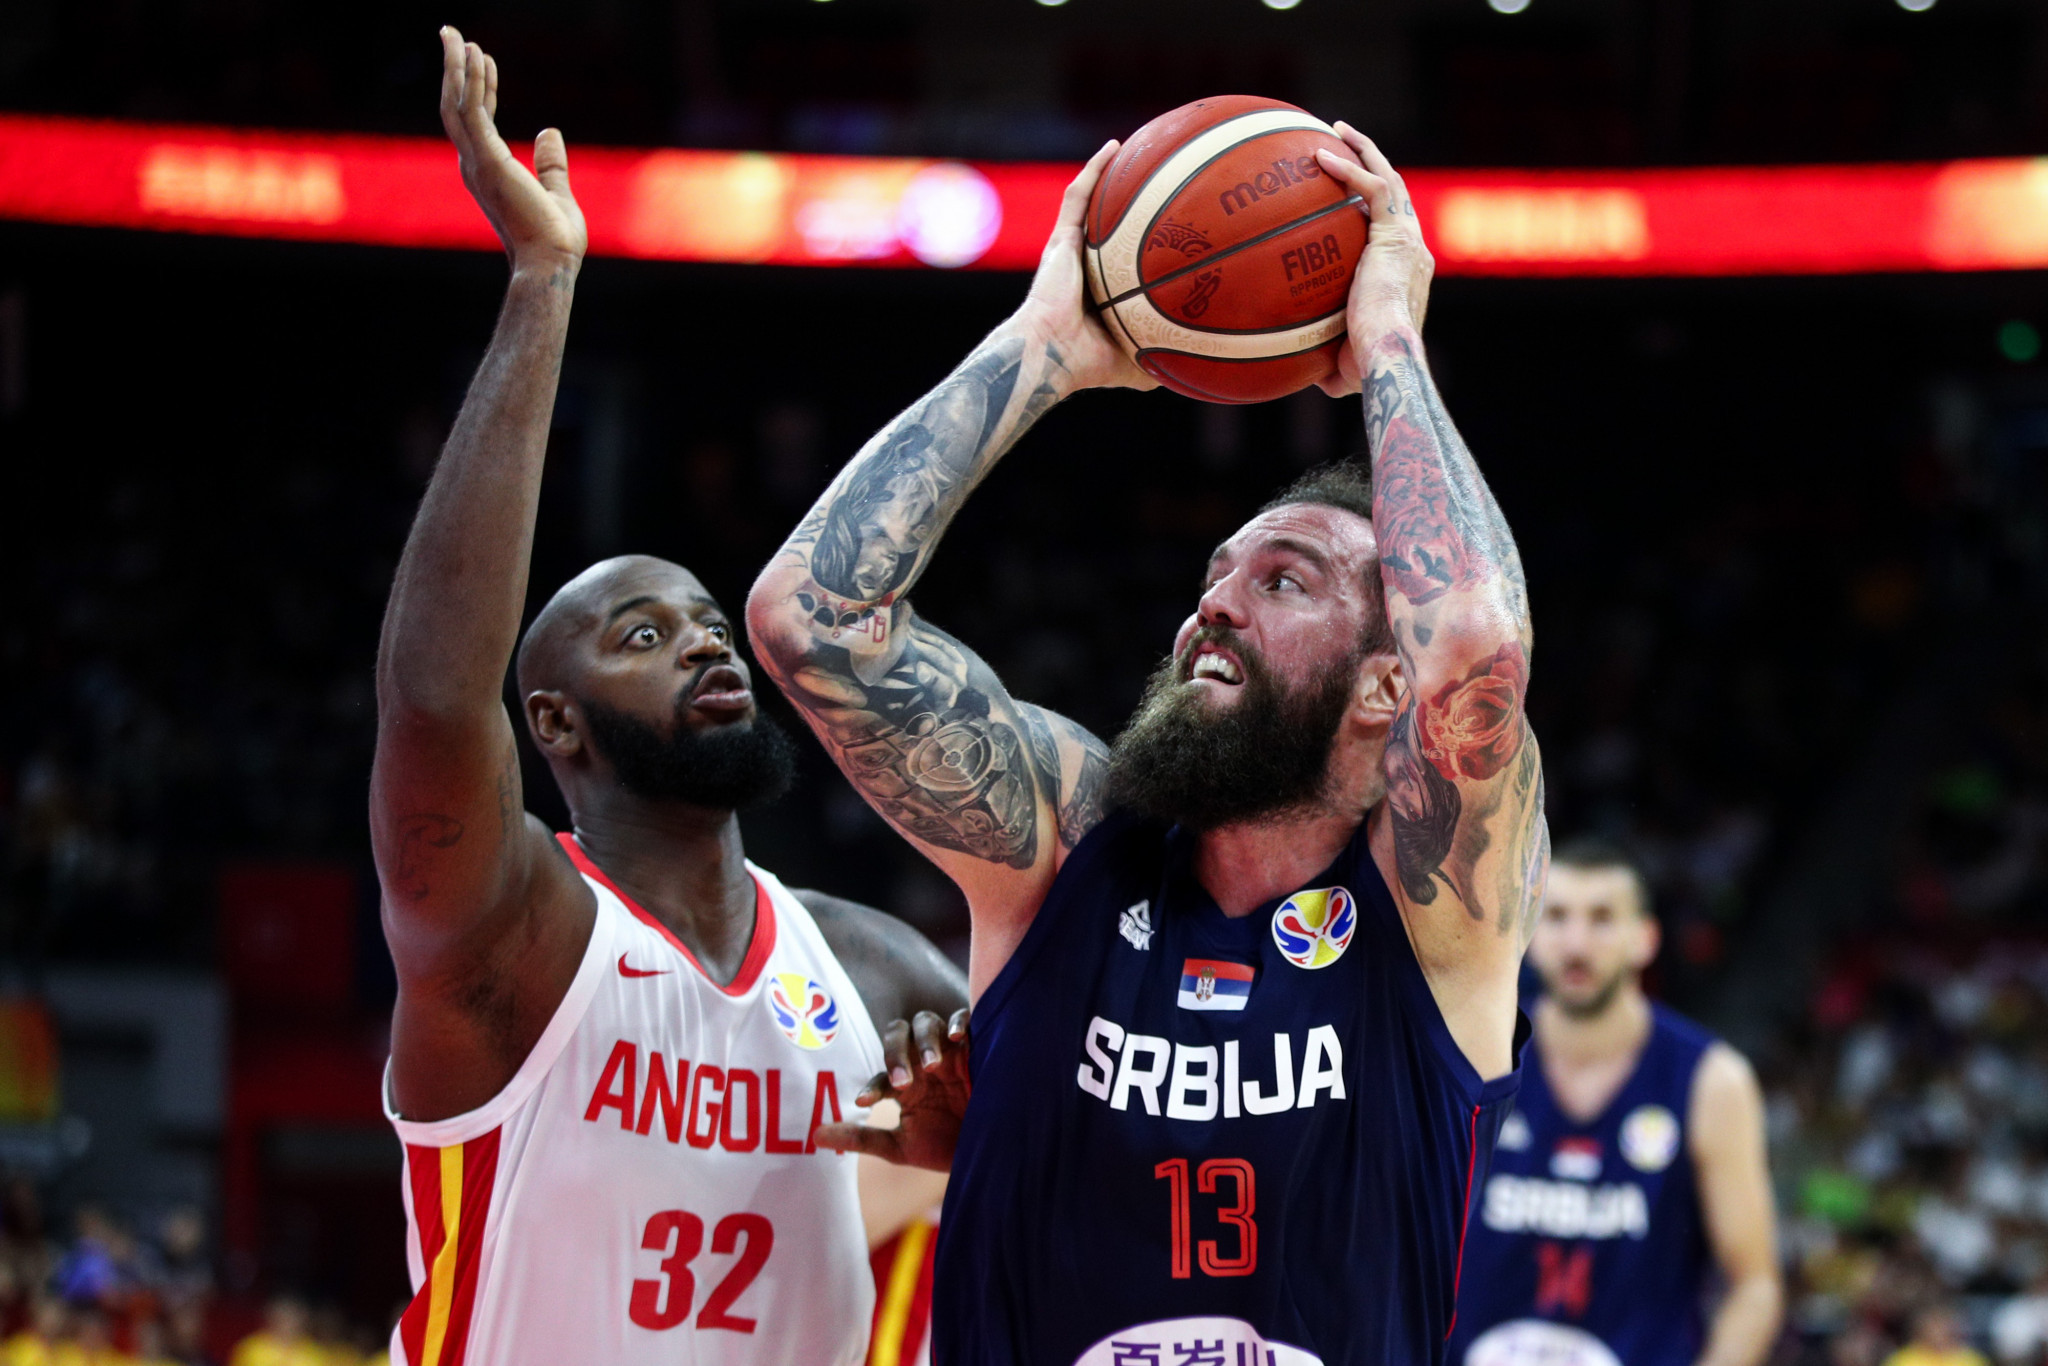 Serbia open FIBA World Cup account with resounding win over Angola